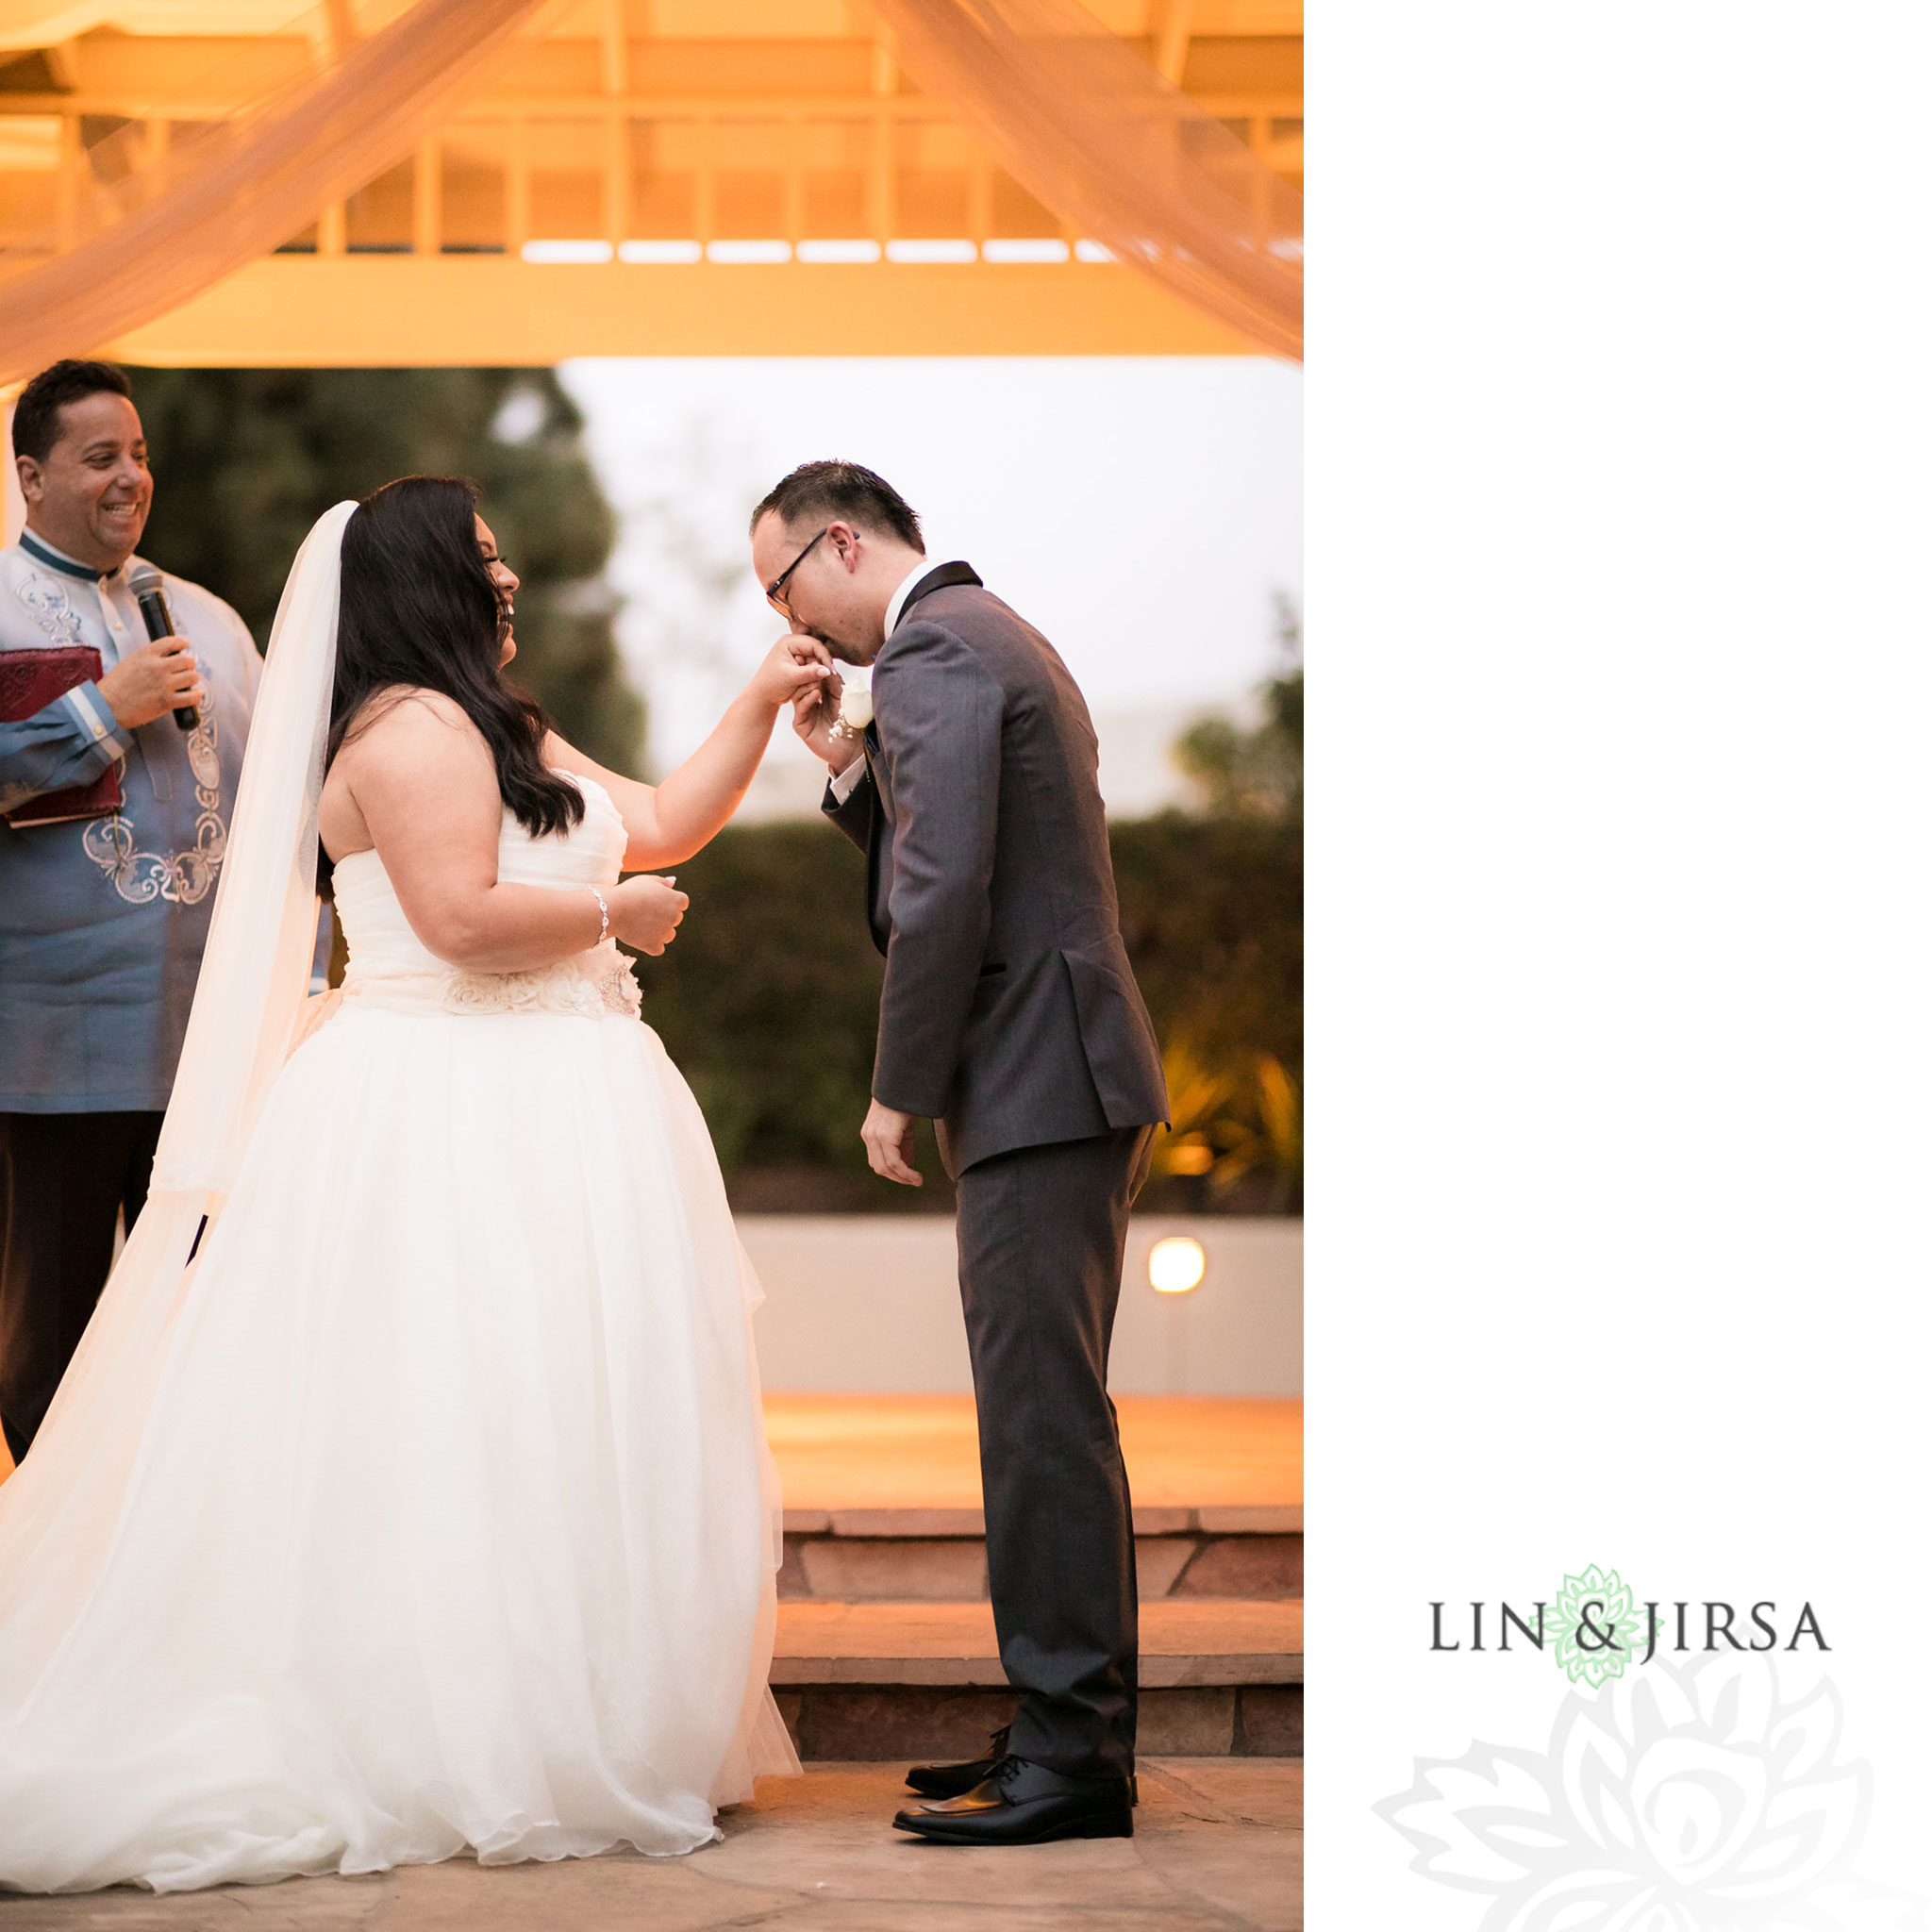 25 turnip rose promenade orange county wedding ceremony photography